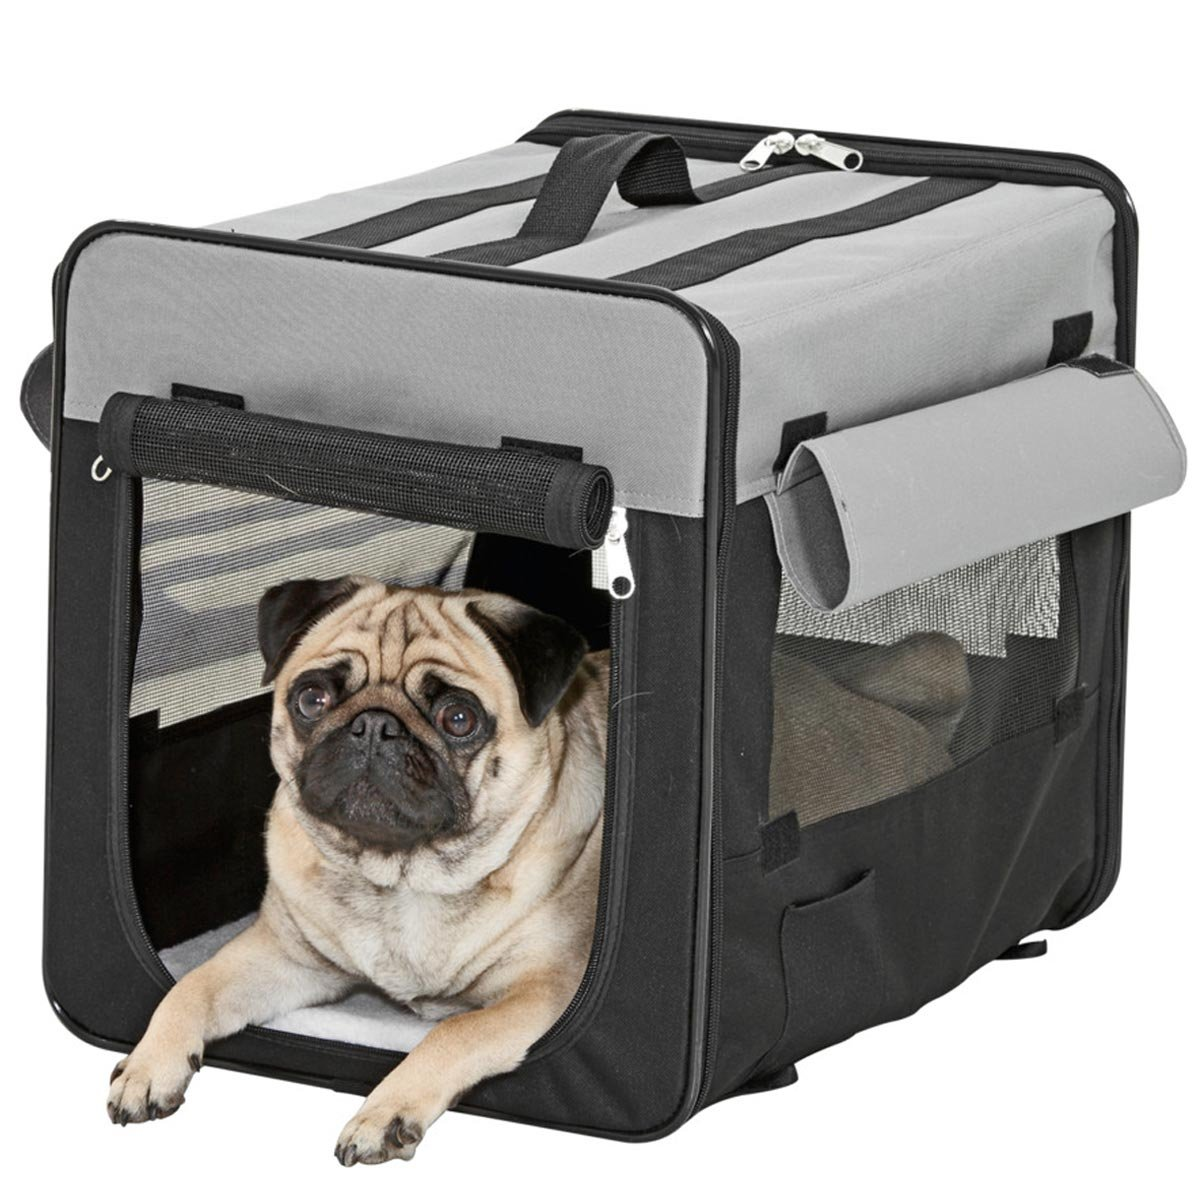 Karlie Flamingo Smart Top Plus Schwarz-Grau faltbare Hunde Transportbox Hundebox in 5Größen